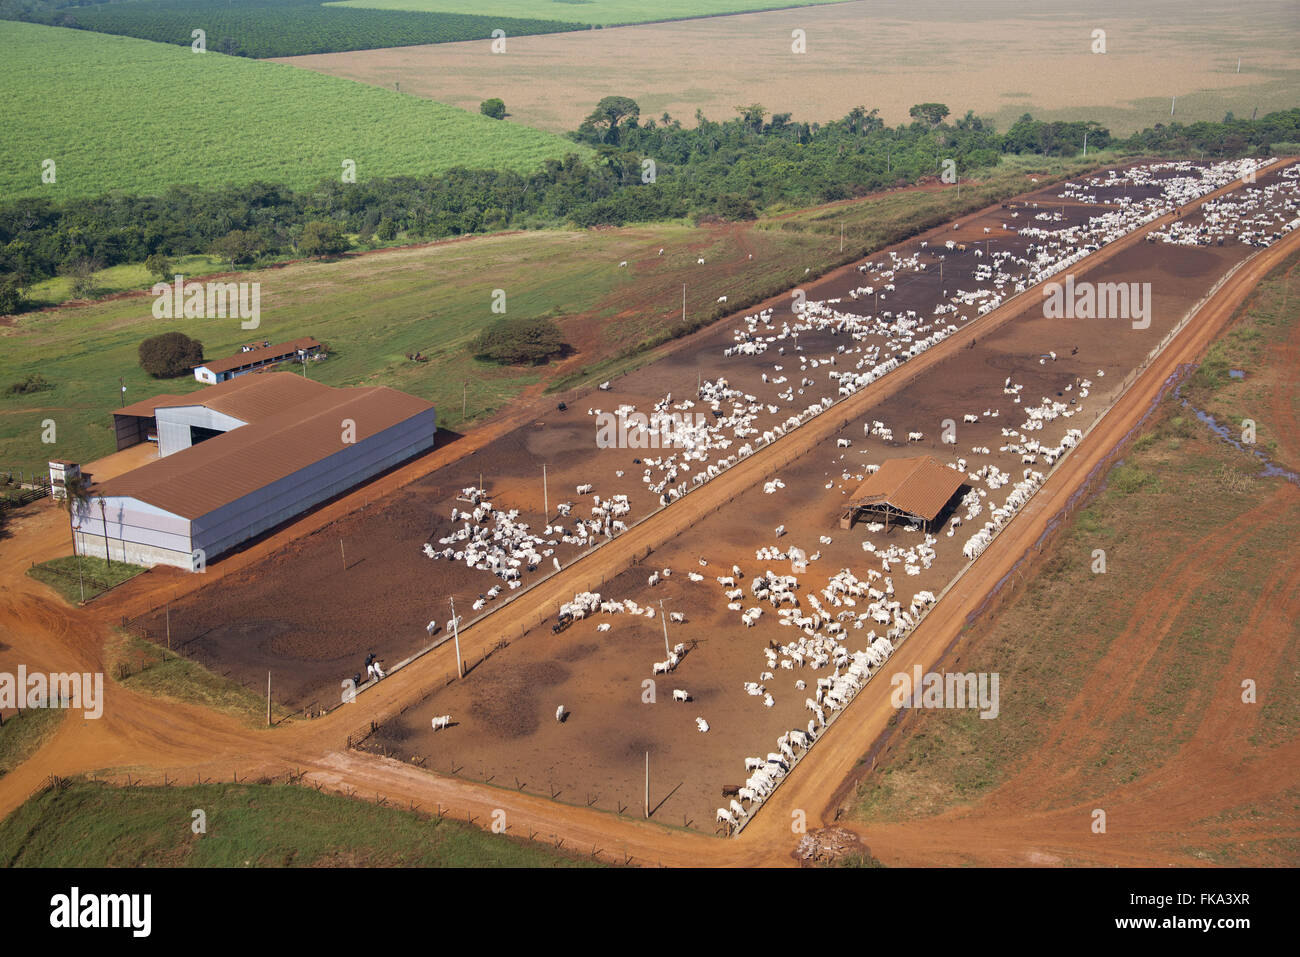 Aerial view of farm creation of cattle confined - Stock Image